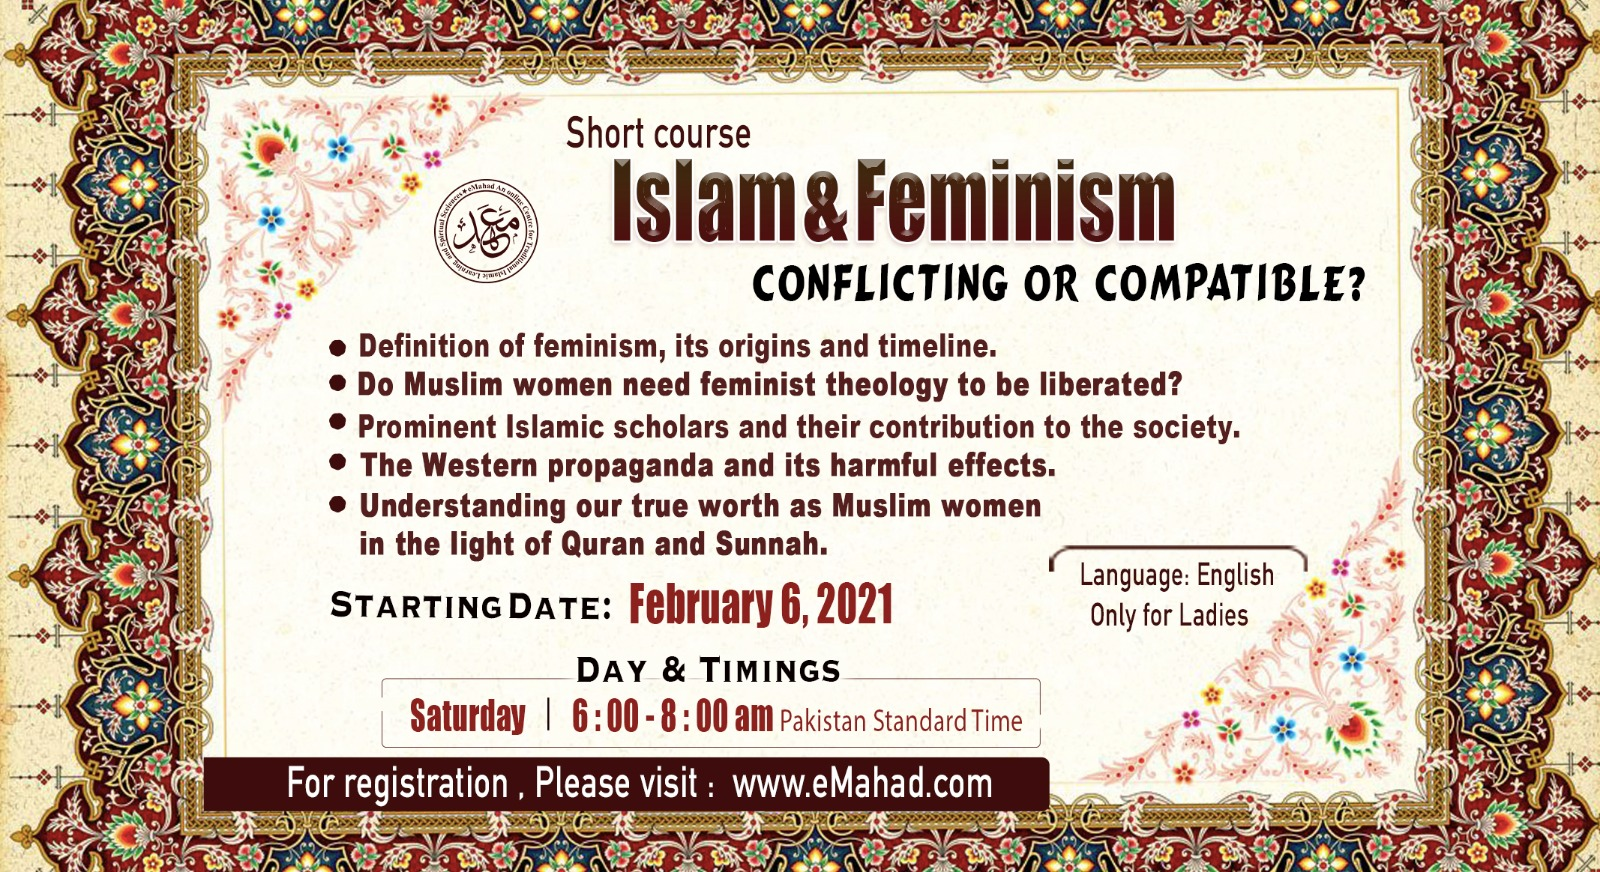 Islam & Feminism (Conflicting or Compatible)